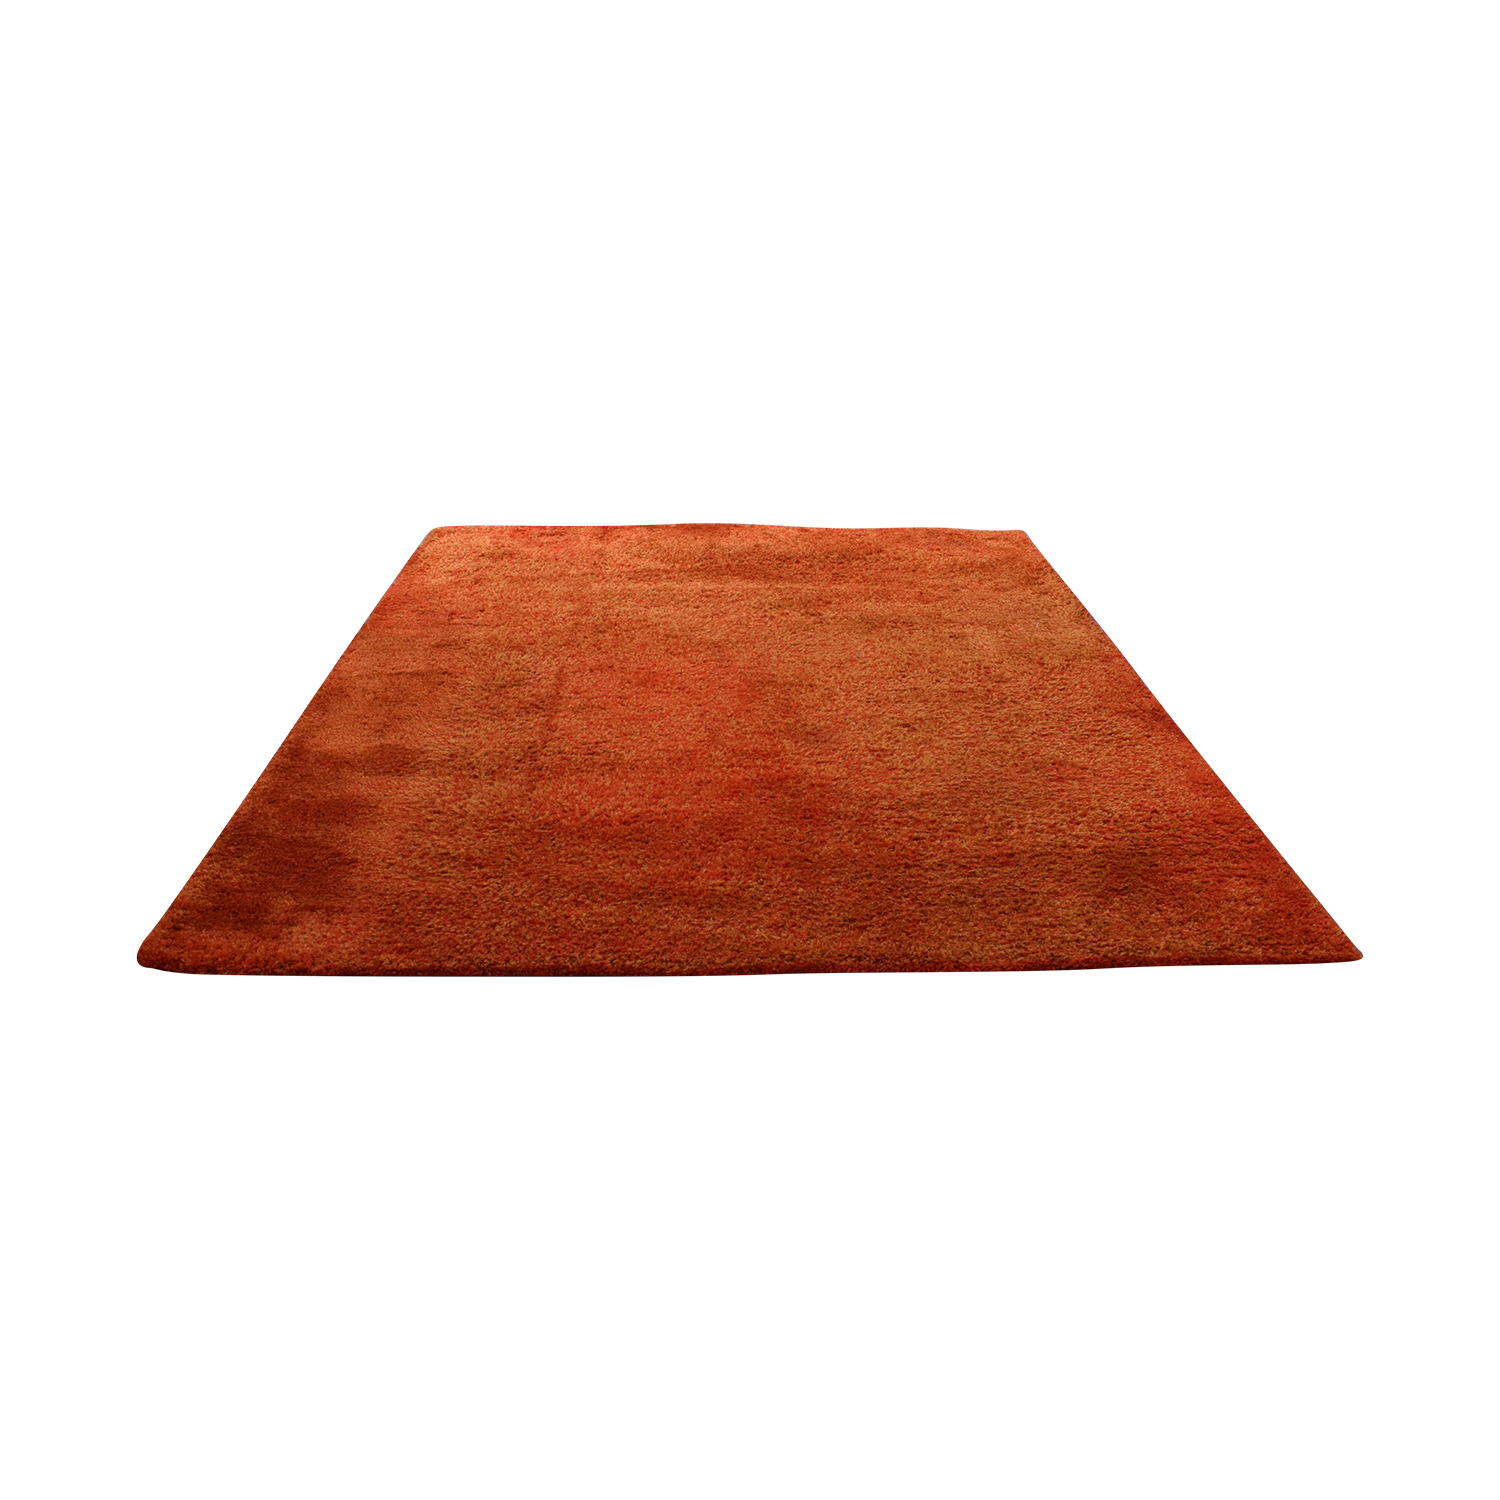 CB2 Roper Shag Orange Rug CB2